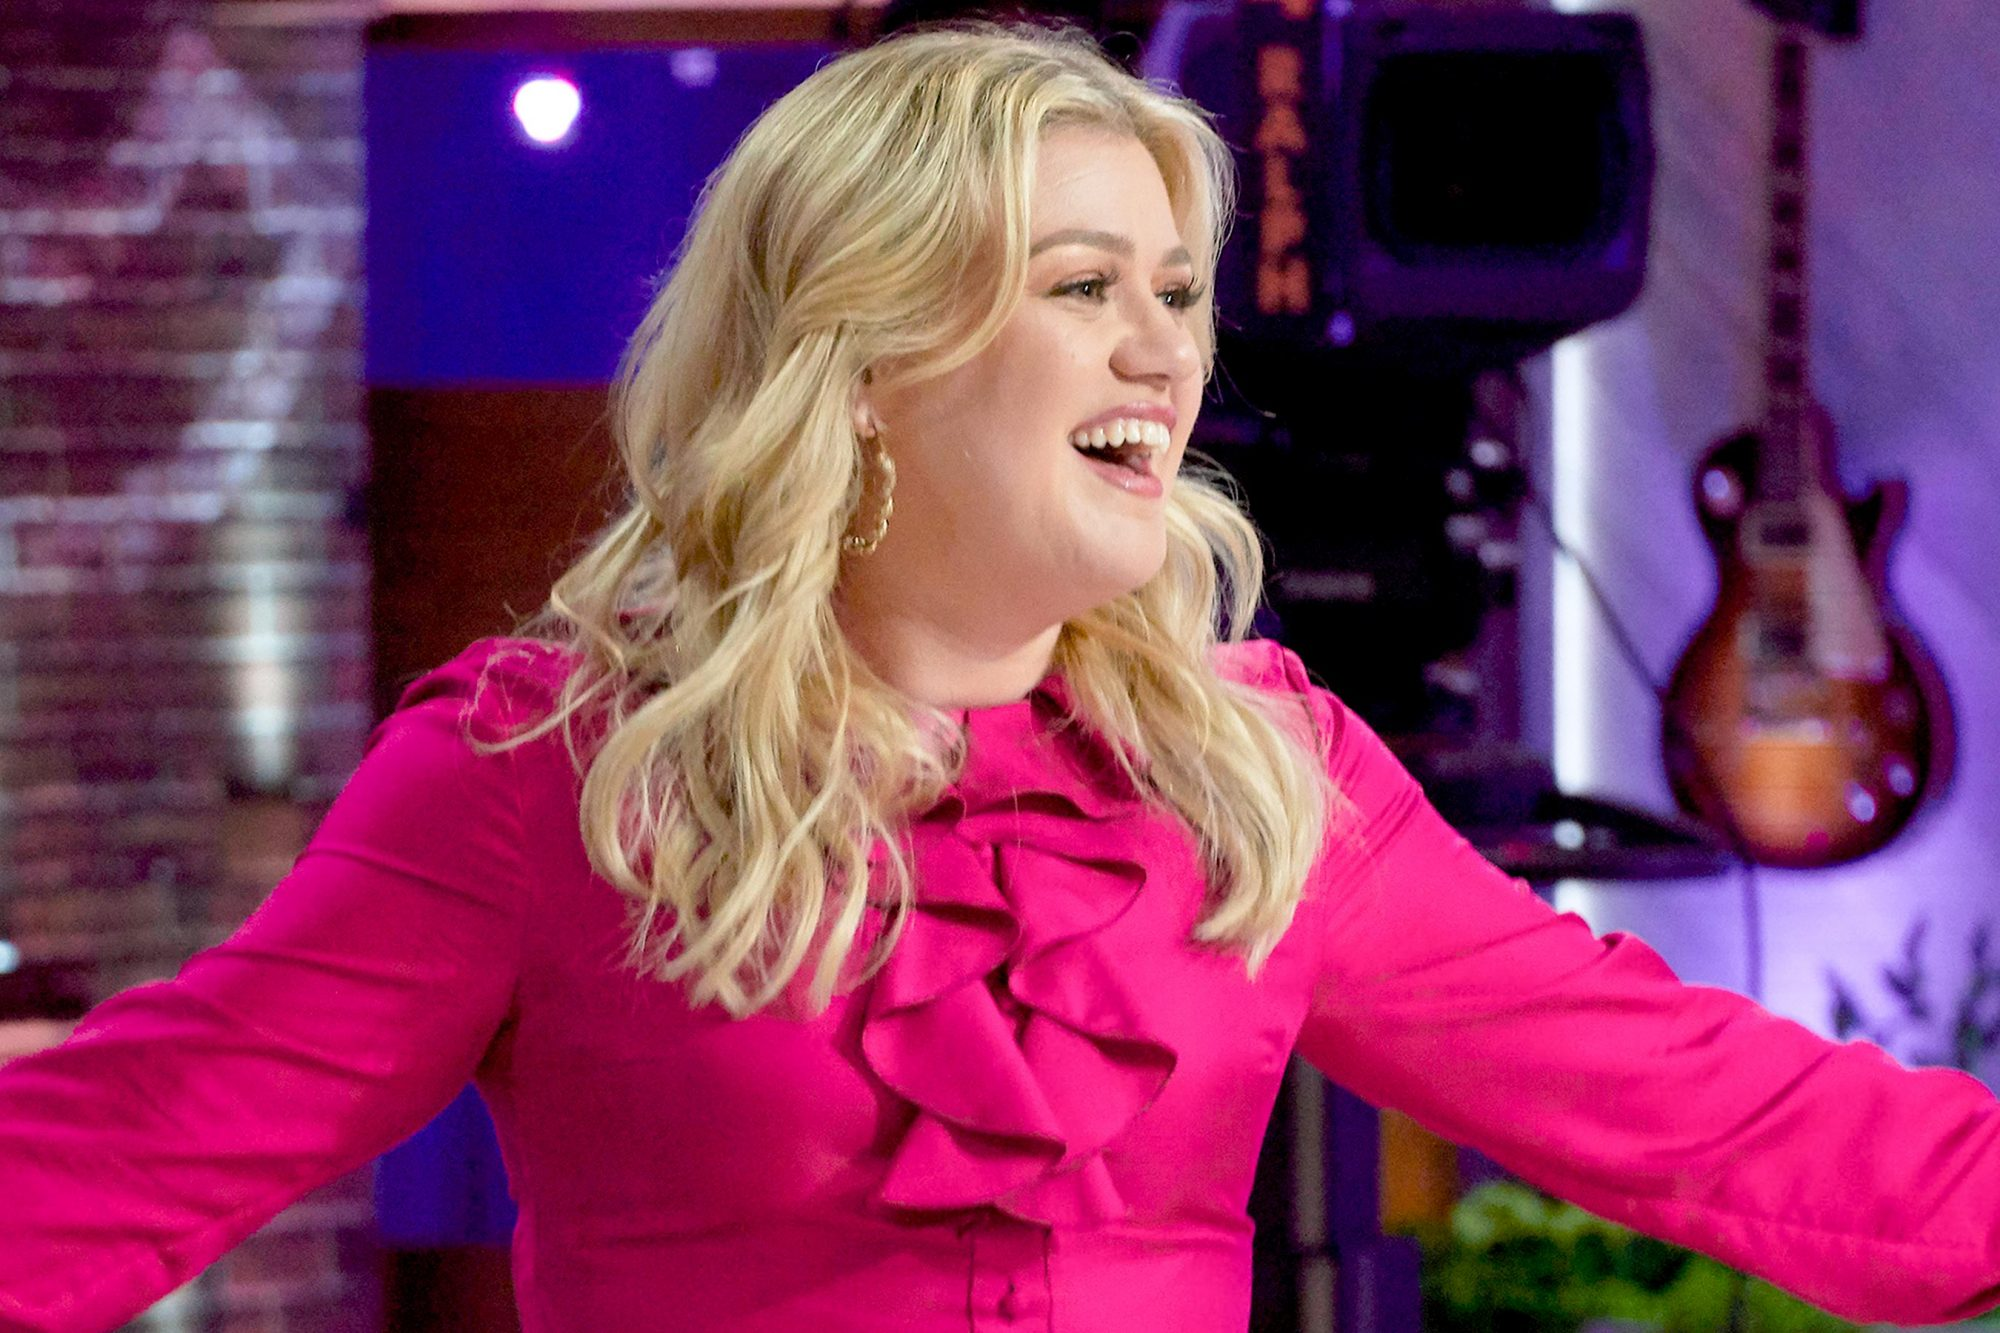 THE KELLY CLARKSON SHOW -- Episode 3010 -- Pictured: Kelly Clarkson -- (Photo by: Adam Torgerson/NBCUniversal)